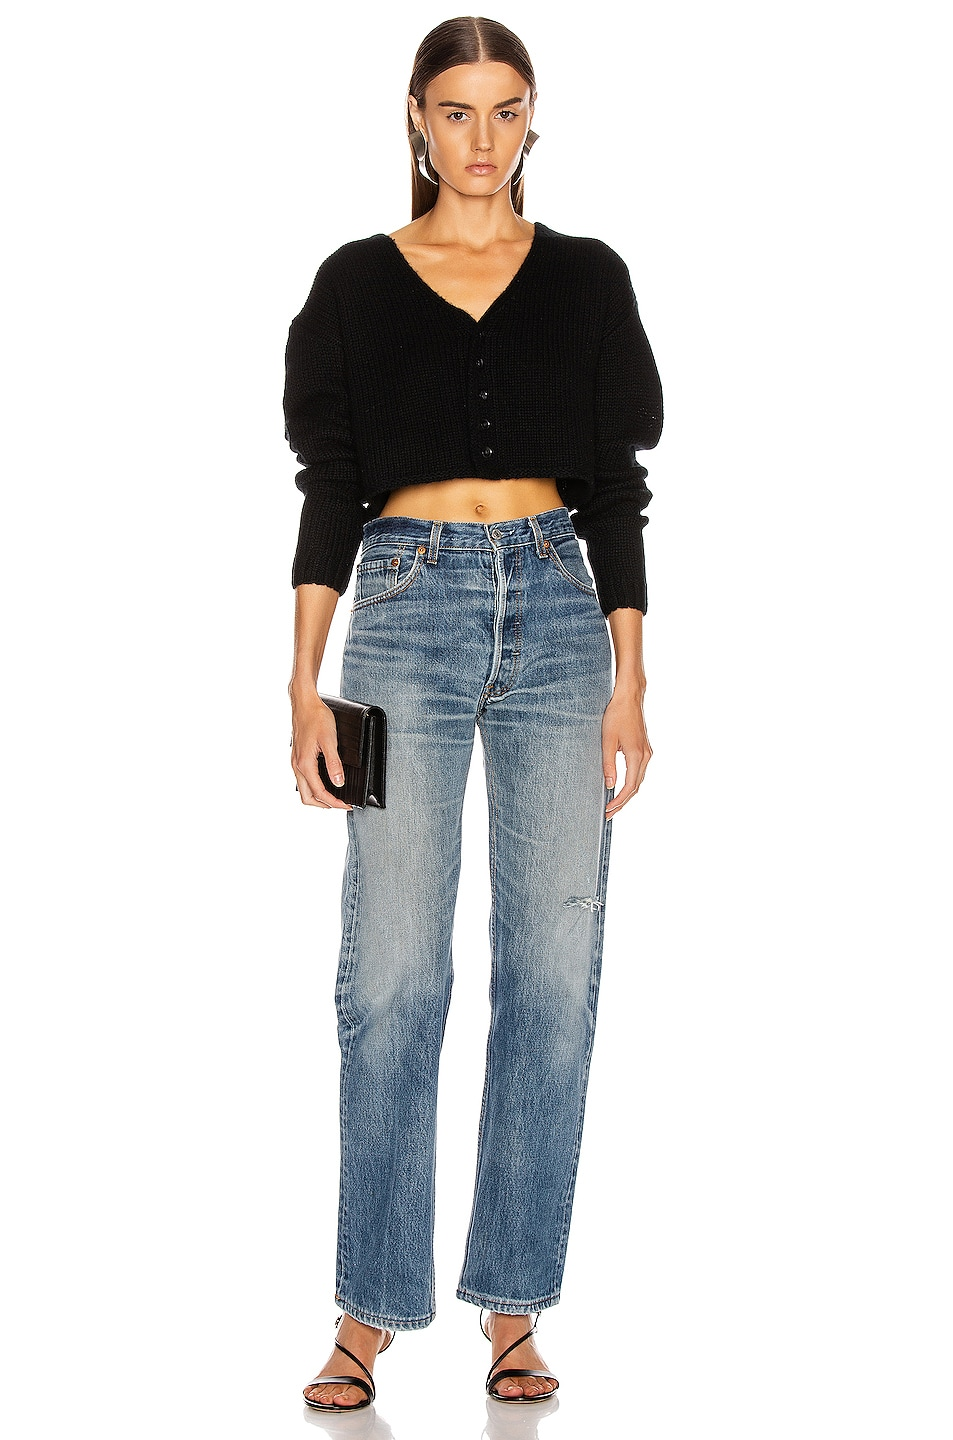 Image 4 of SABLYN Bianco Sweater in Black